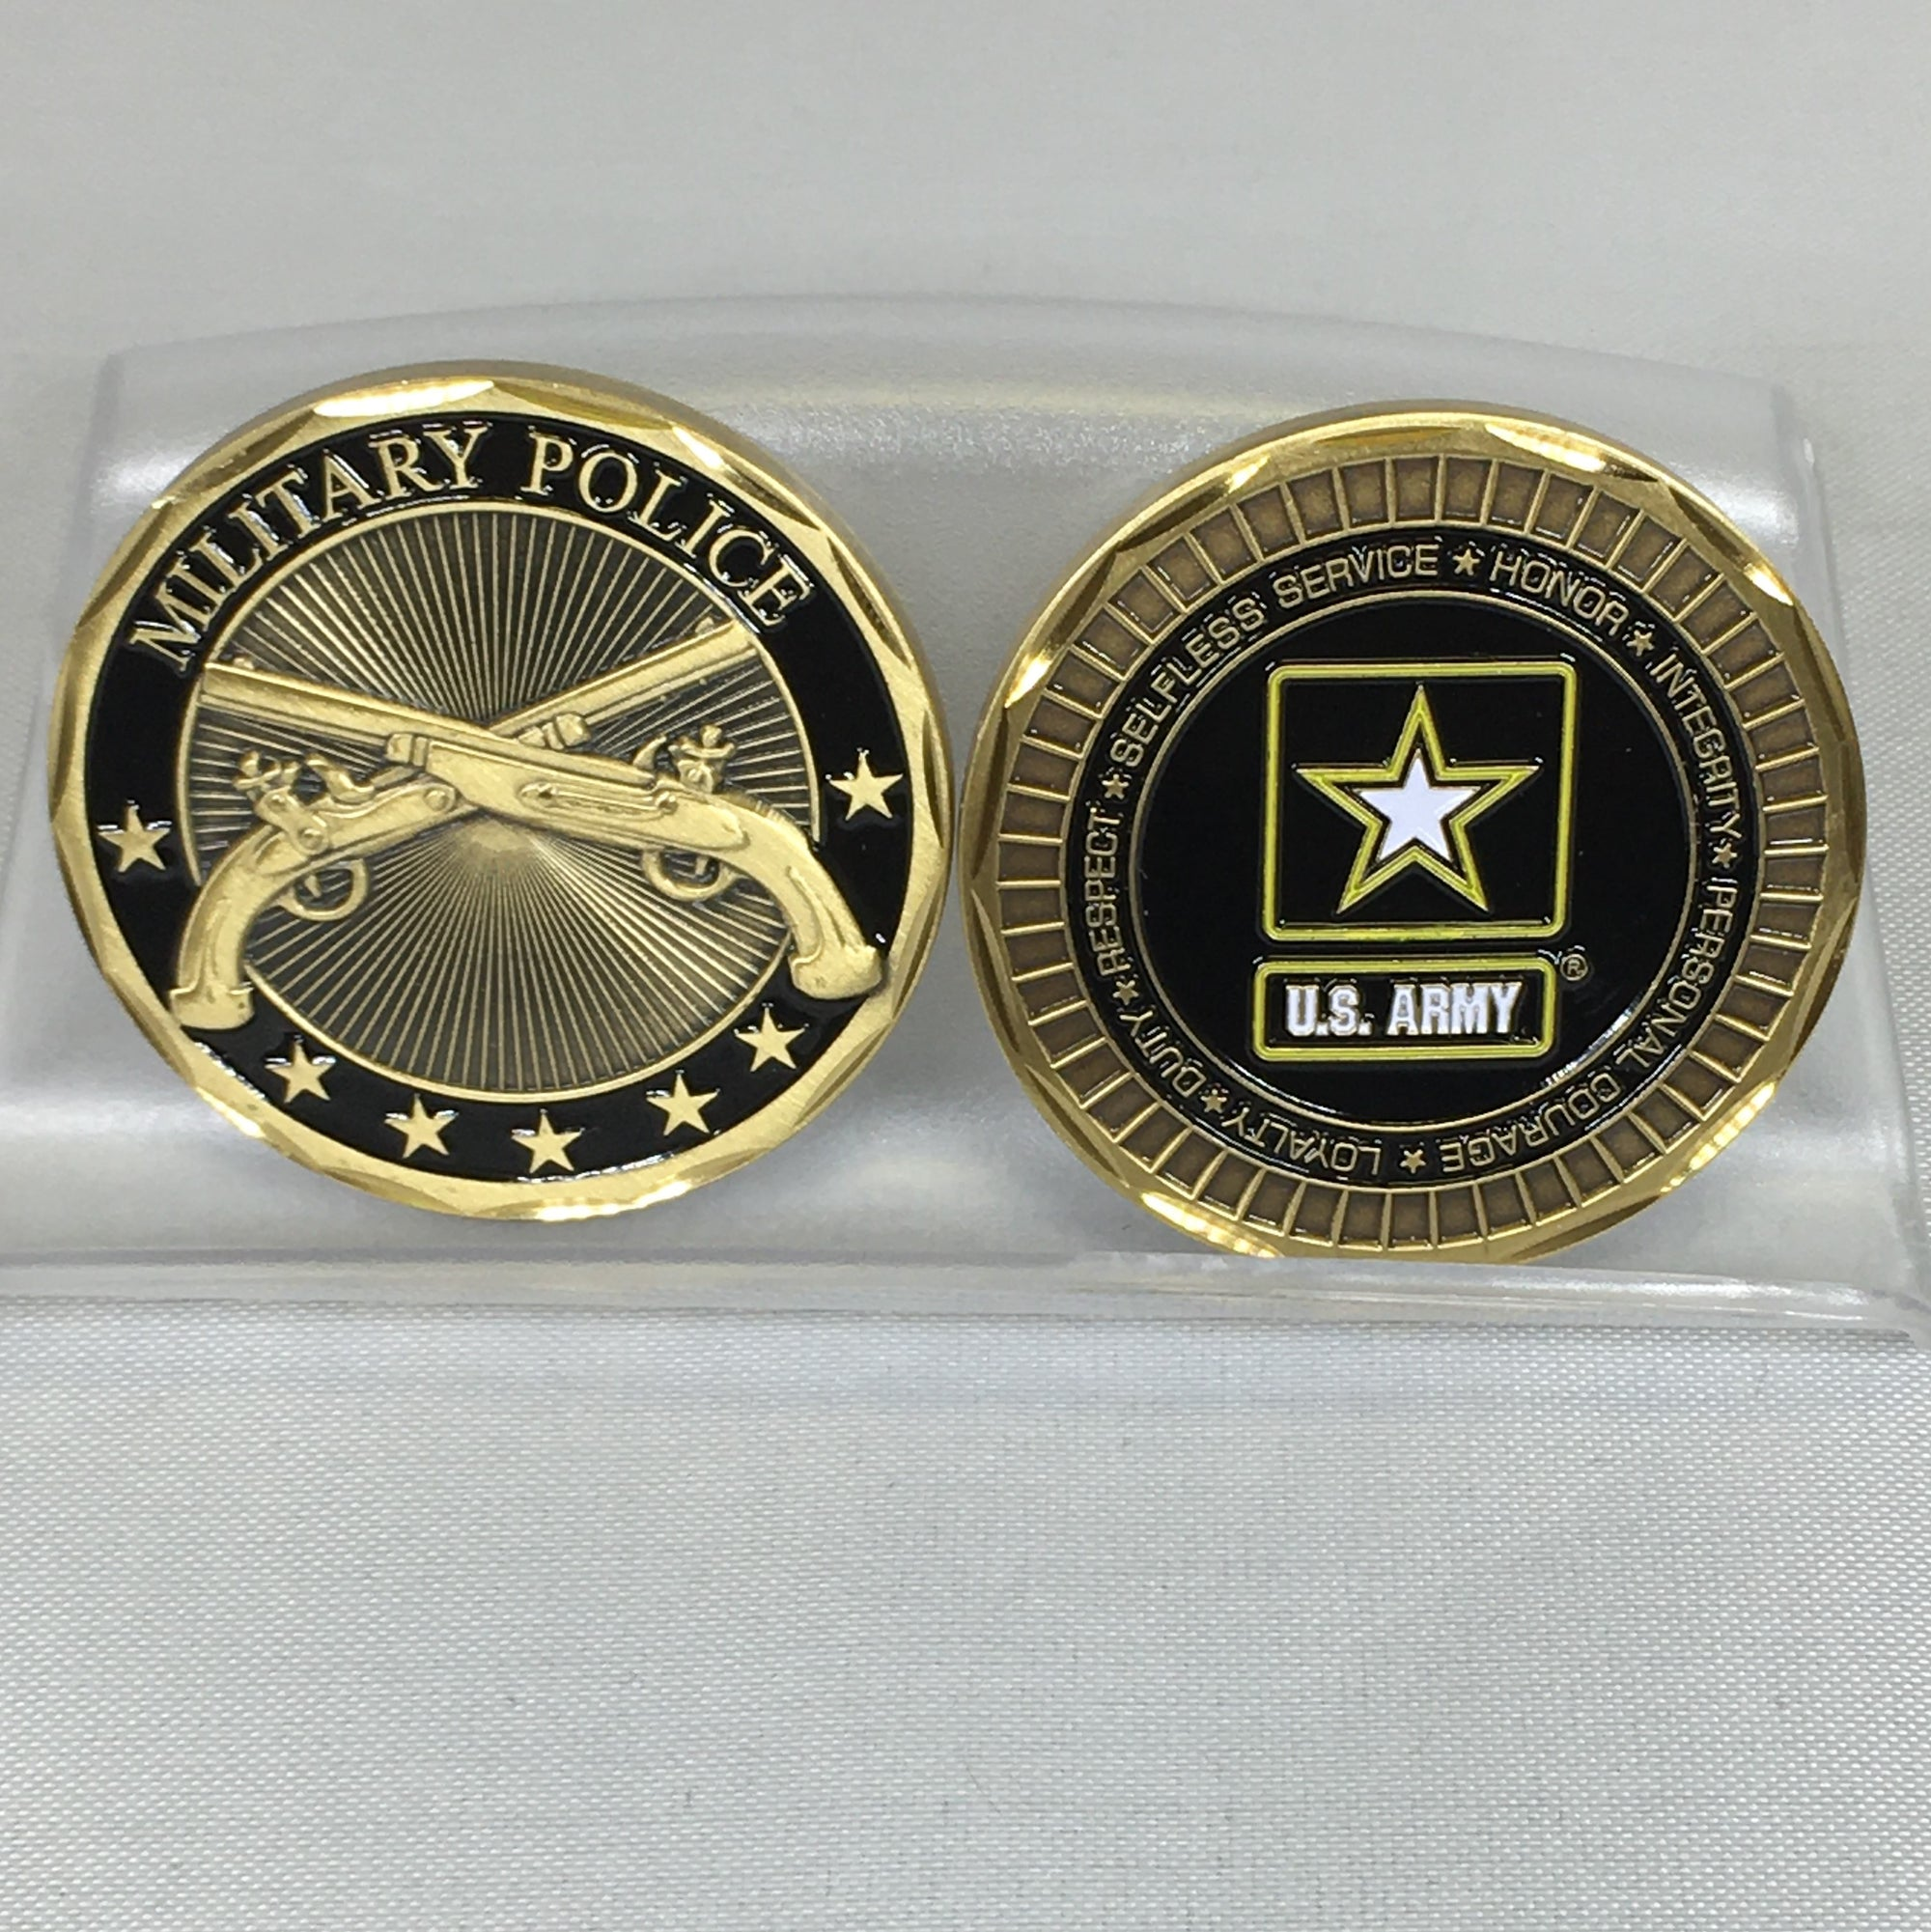 US Army Military Police Challenge Coin - Hi Army Museum Society Store